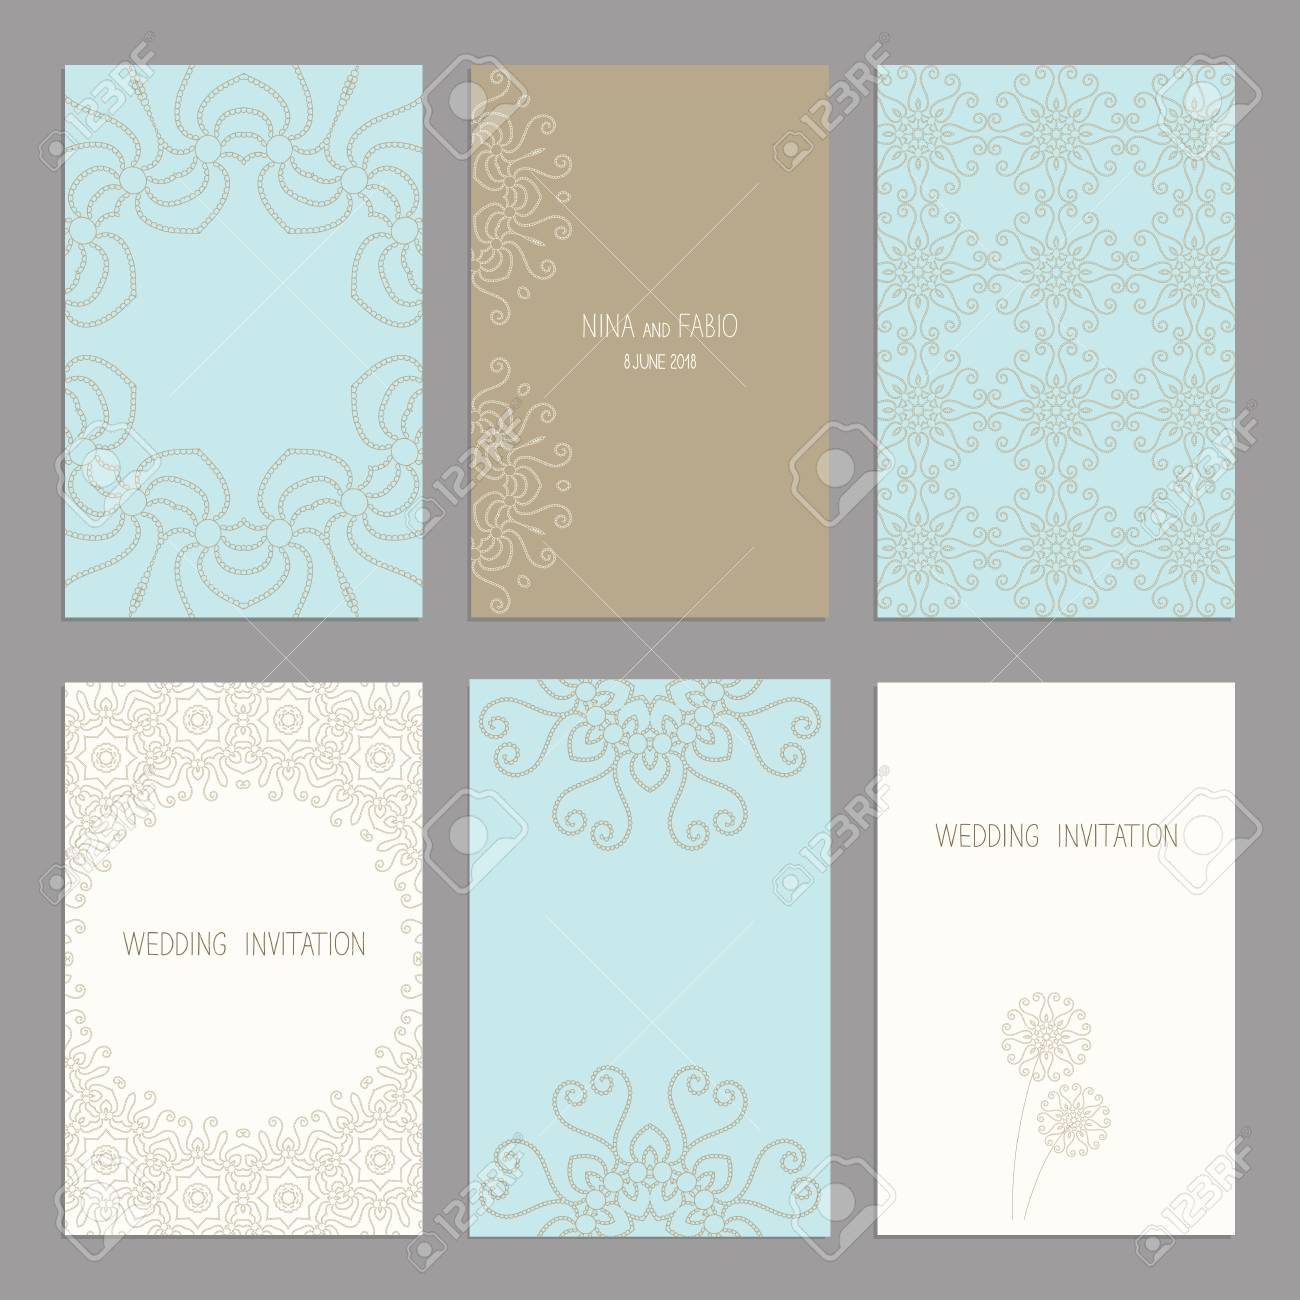 Vector Set Of Of Vintage Cards Templates Wedding Invitation ñ Ard Thank You Card Save The Date Cards Rsvp Card Original Design Of Wedding Cards